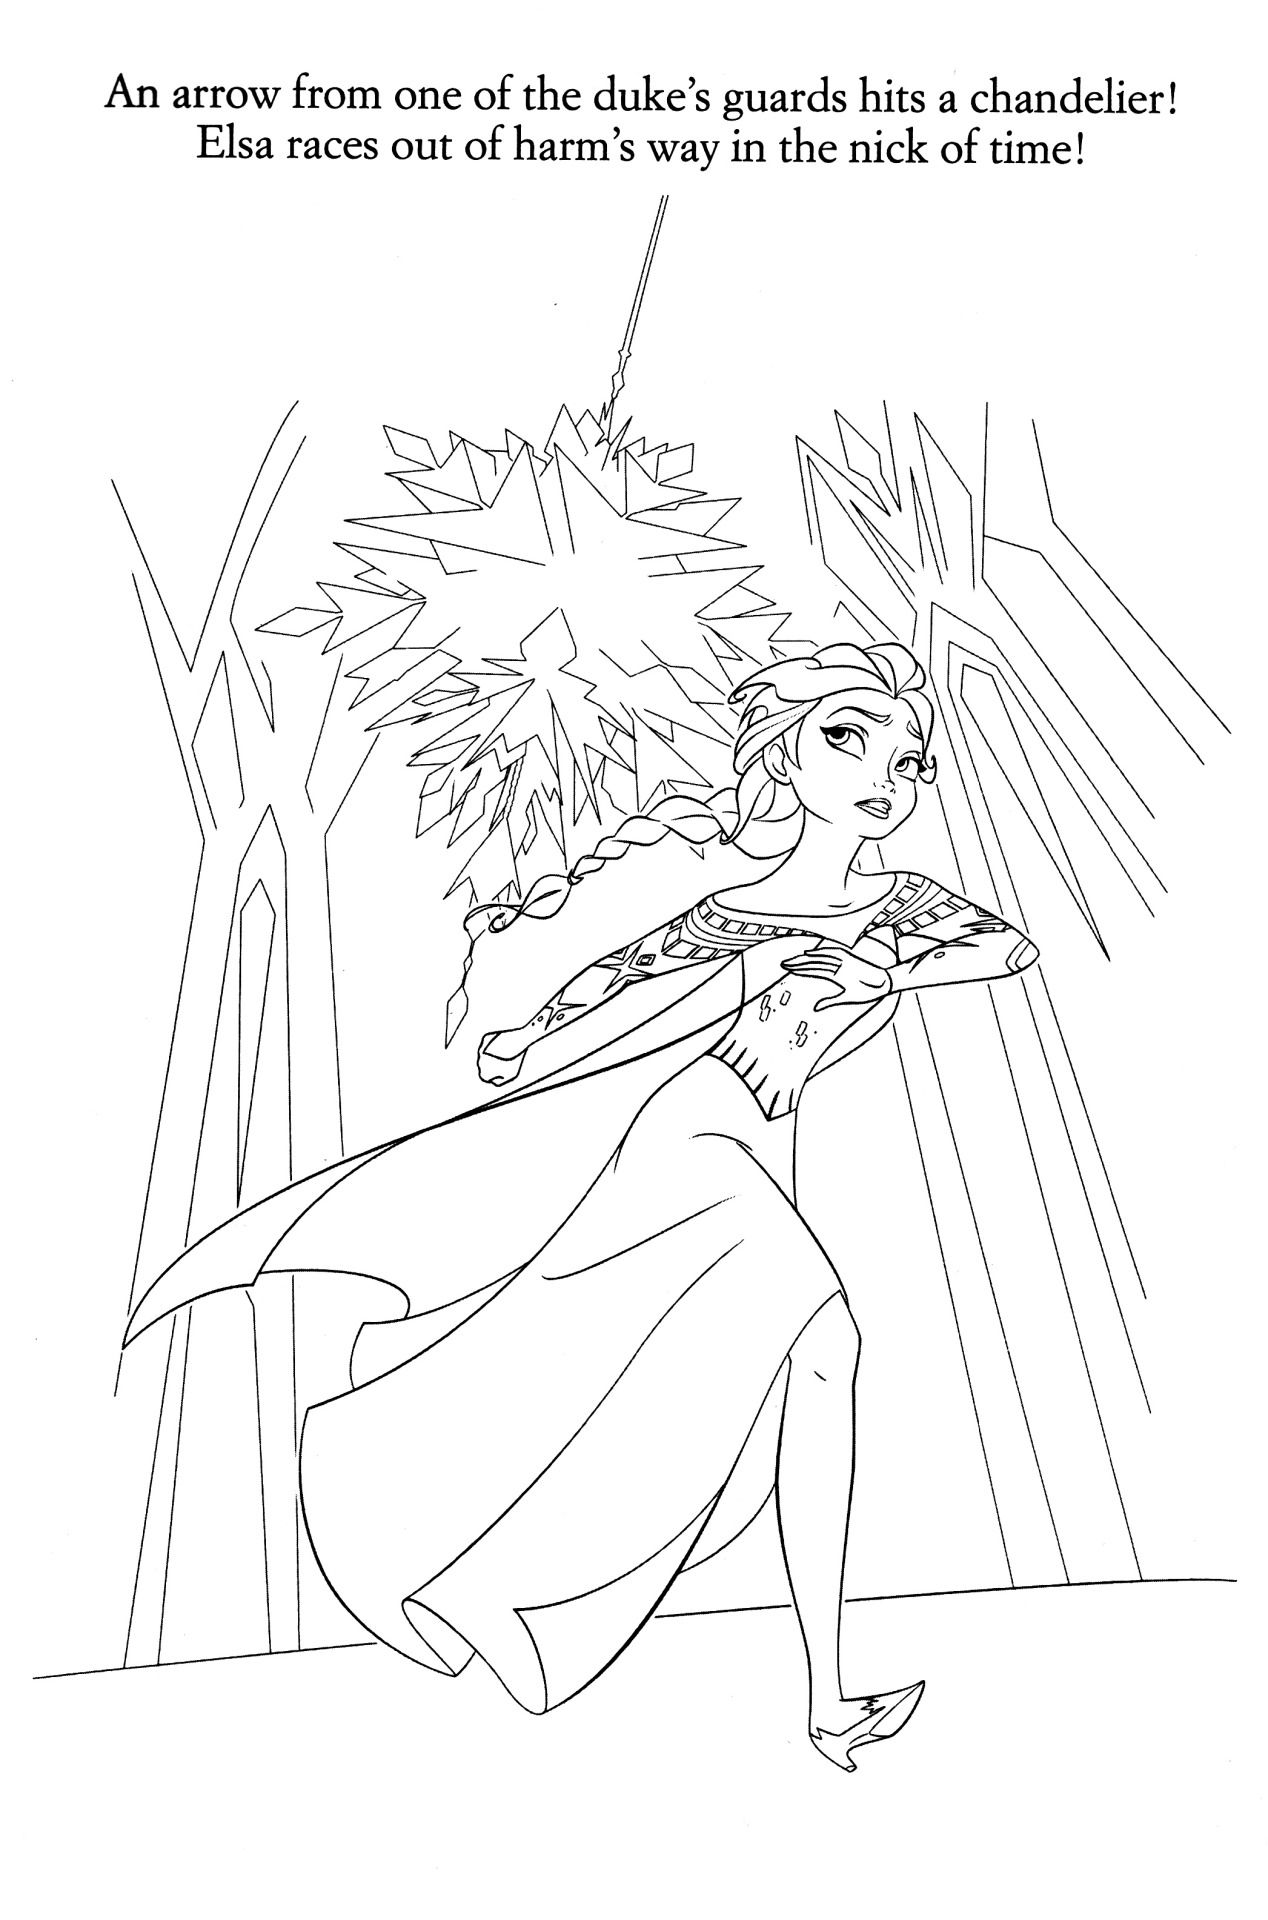 Disney Coloring Pages Photo Disney Coloring Pages Disney Coloring Pages Printables Disney Princess Coloring Pages [ 1920 x 1268 Pixel ]